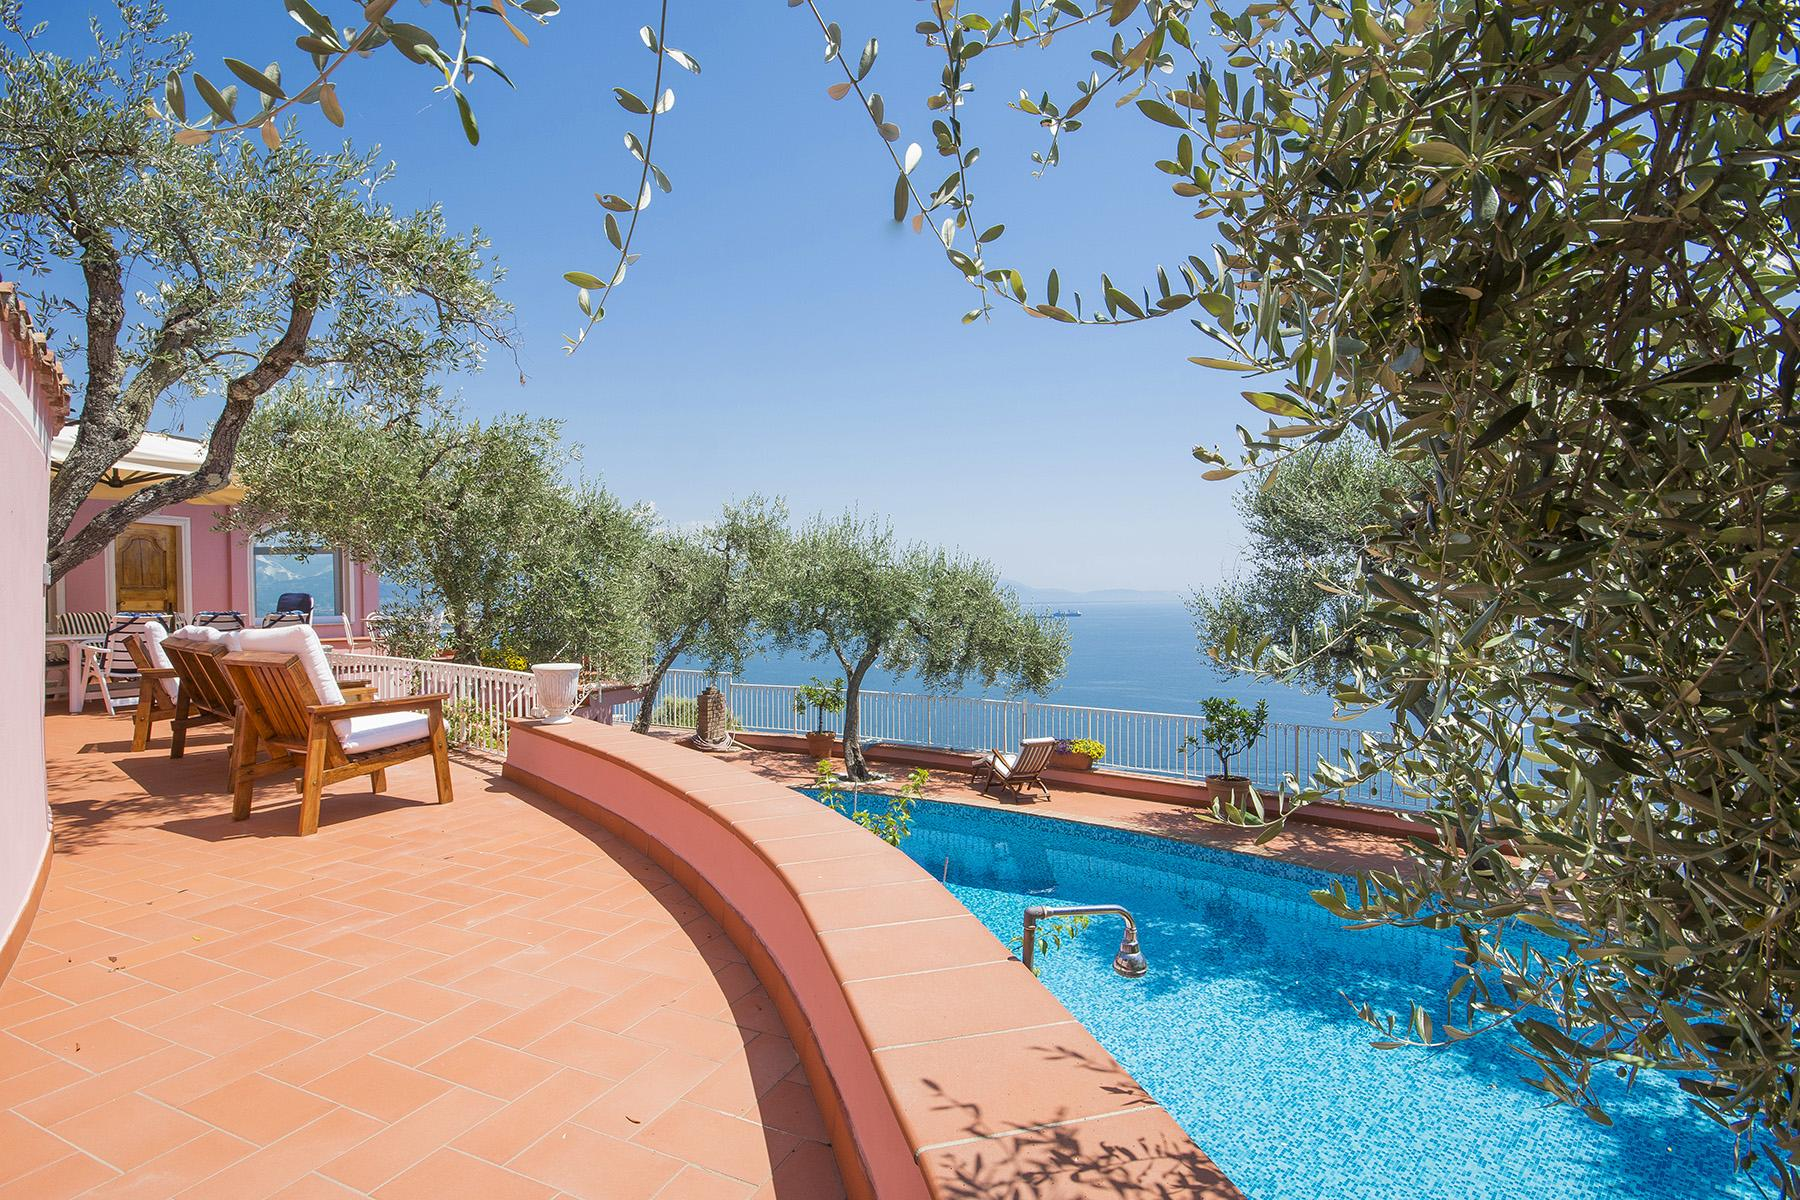 Charming luxury villa with swimming pool overlooking the Ligurian sea - 13